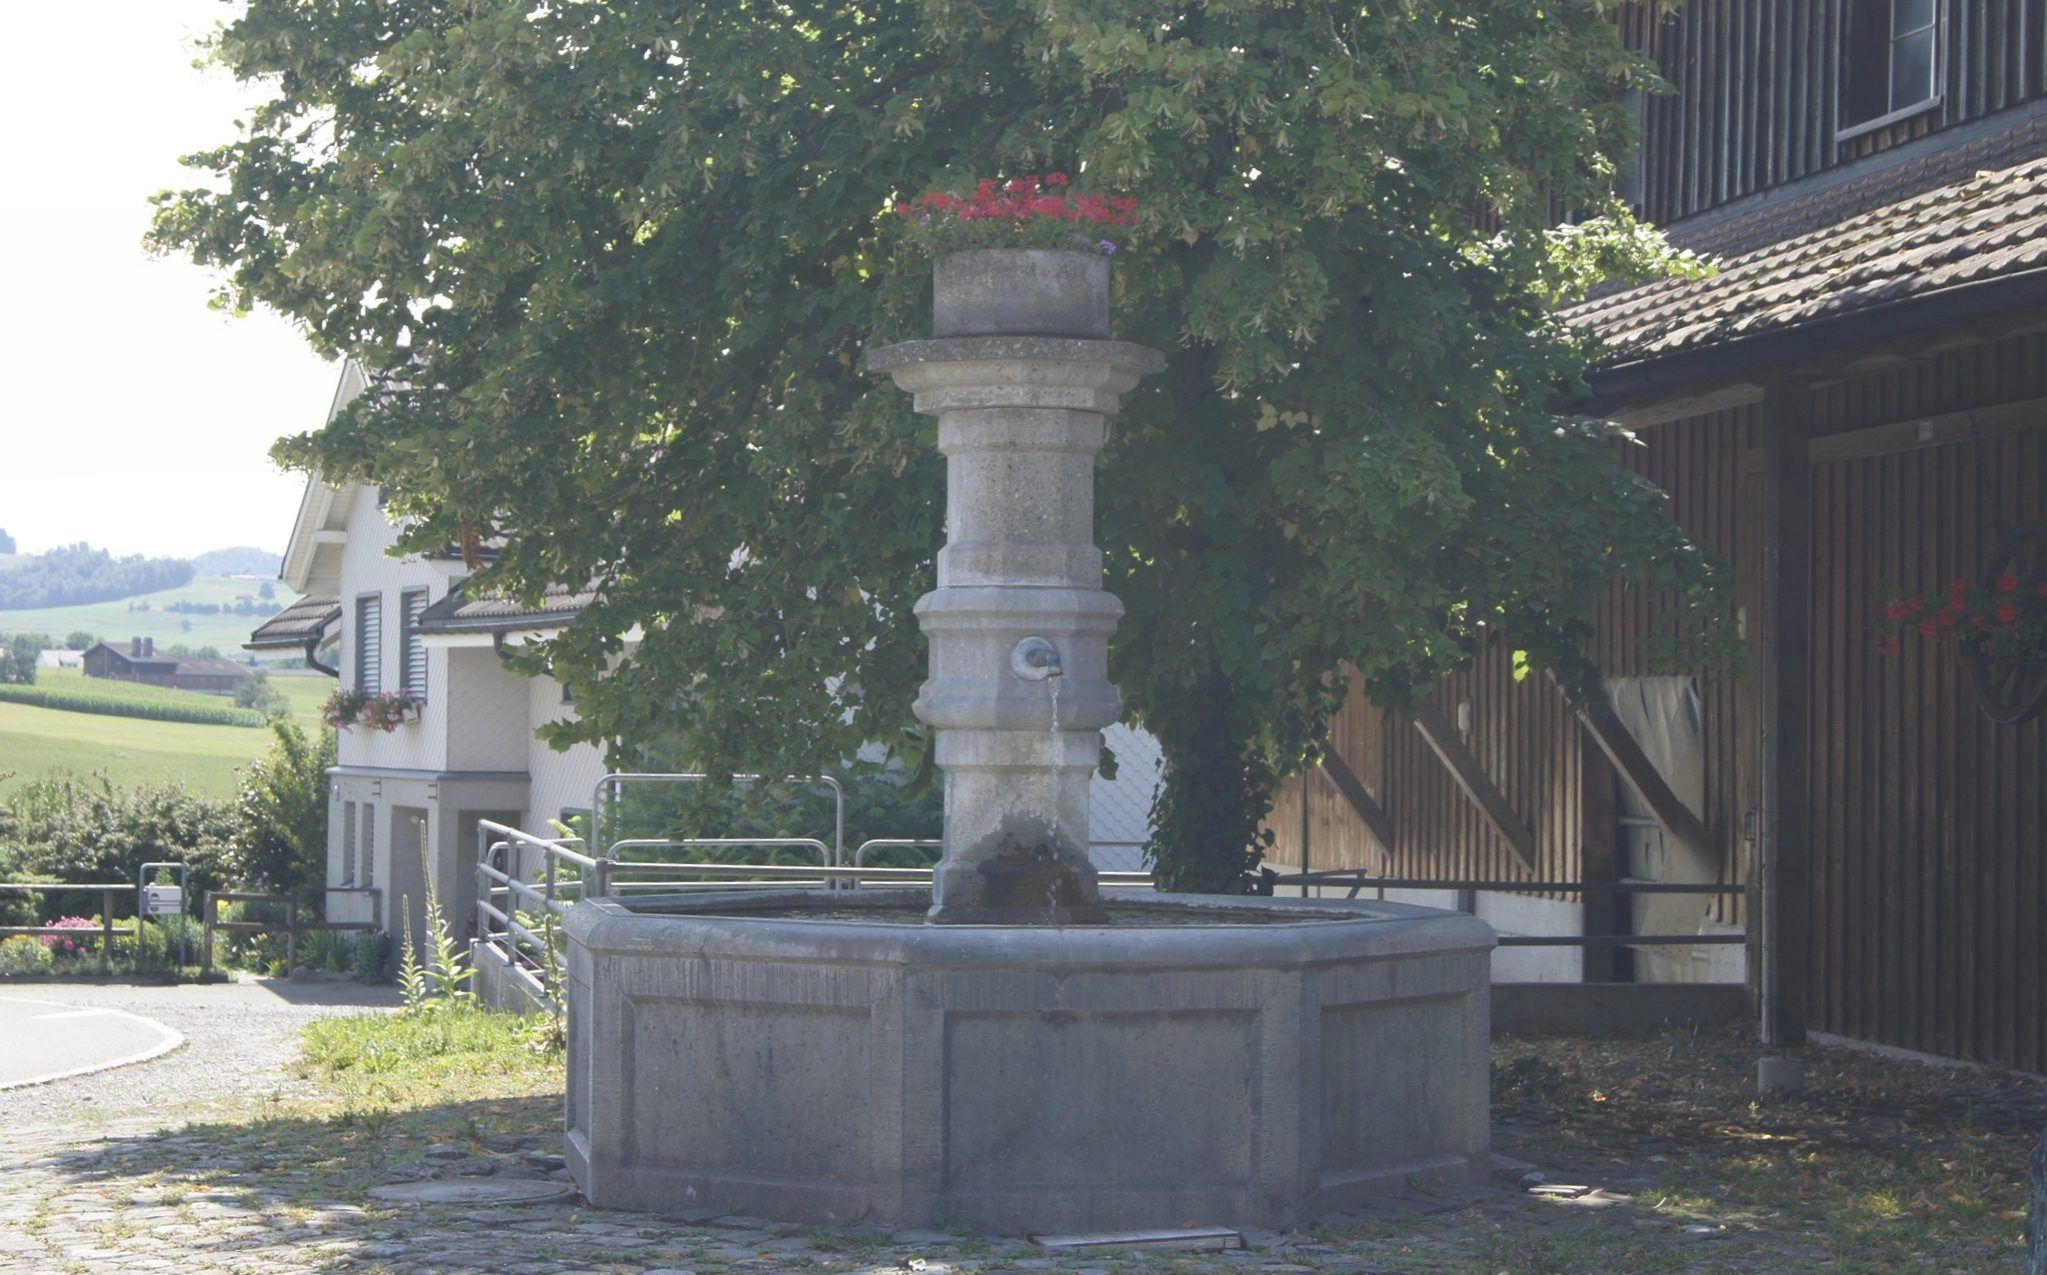 Schmucker Dorfbrunnen in Bettenau